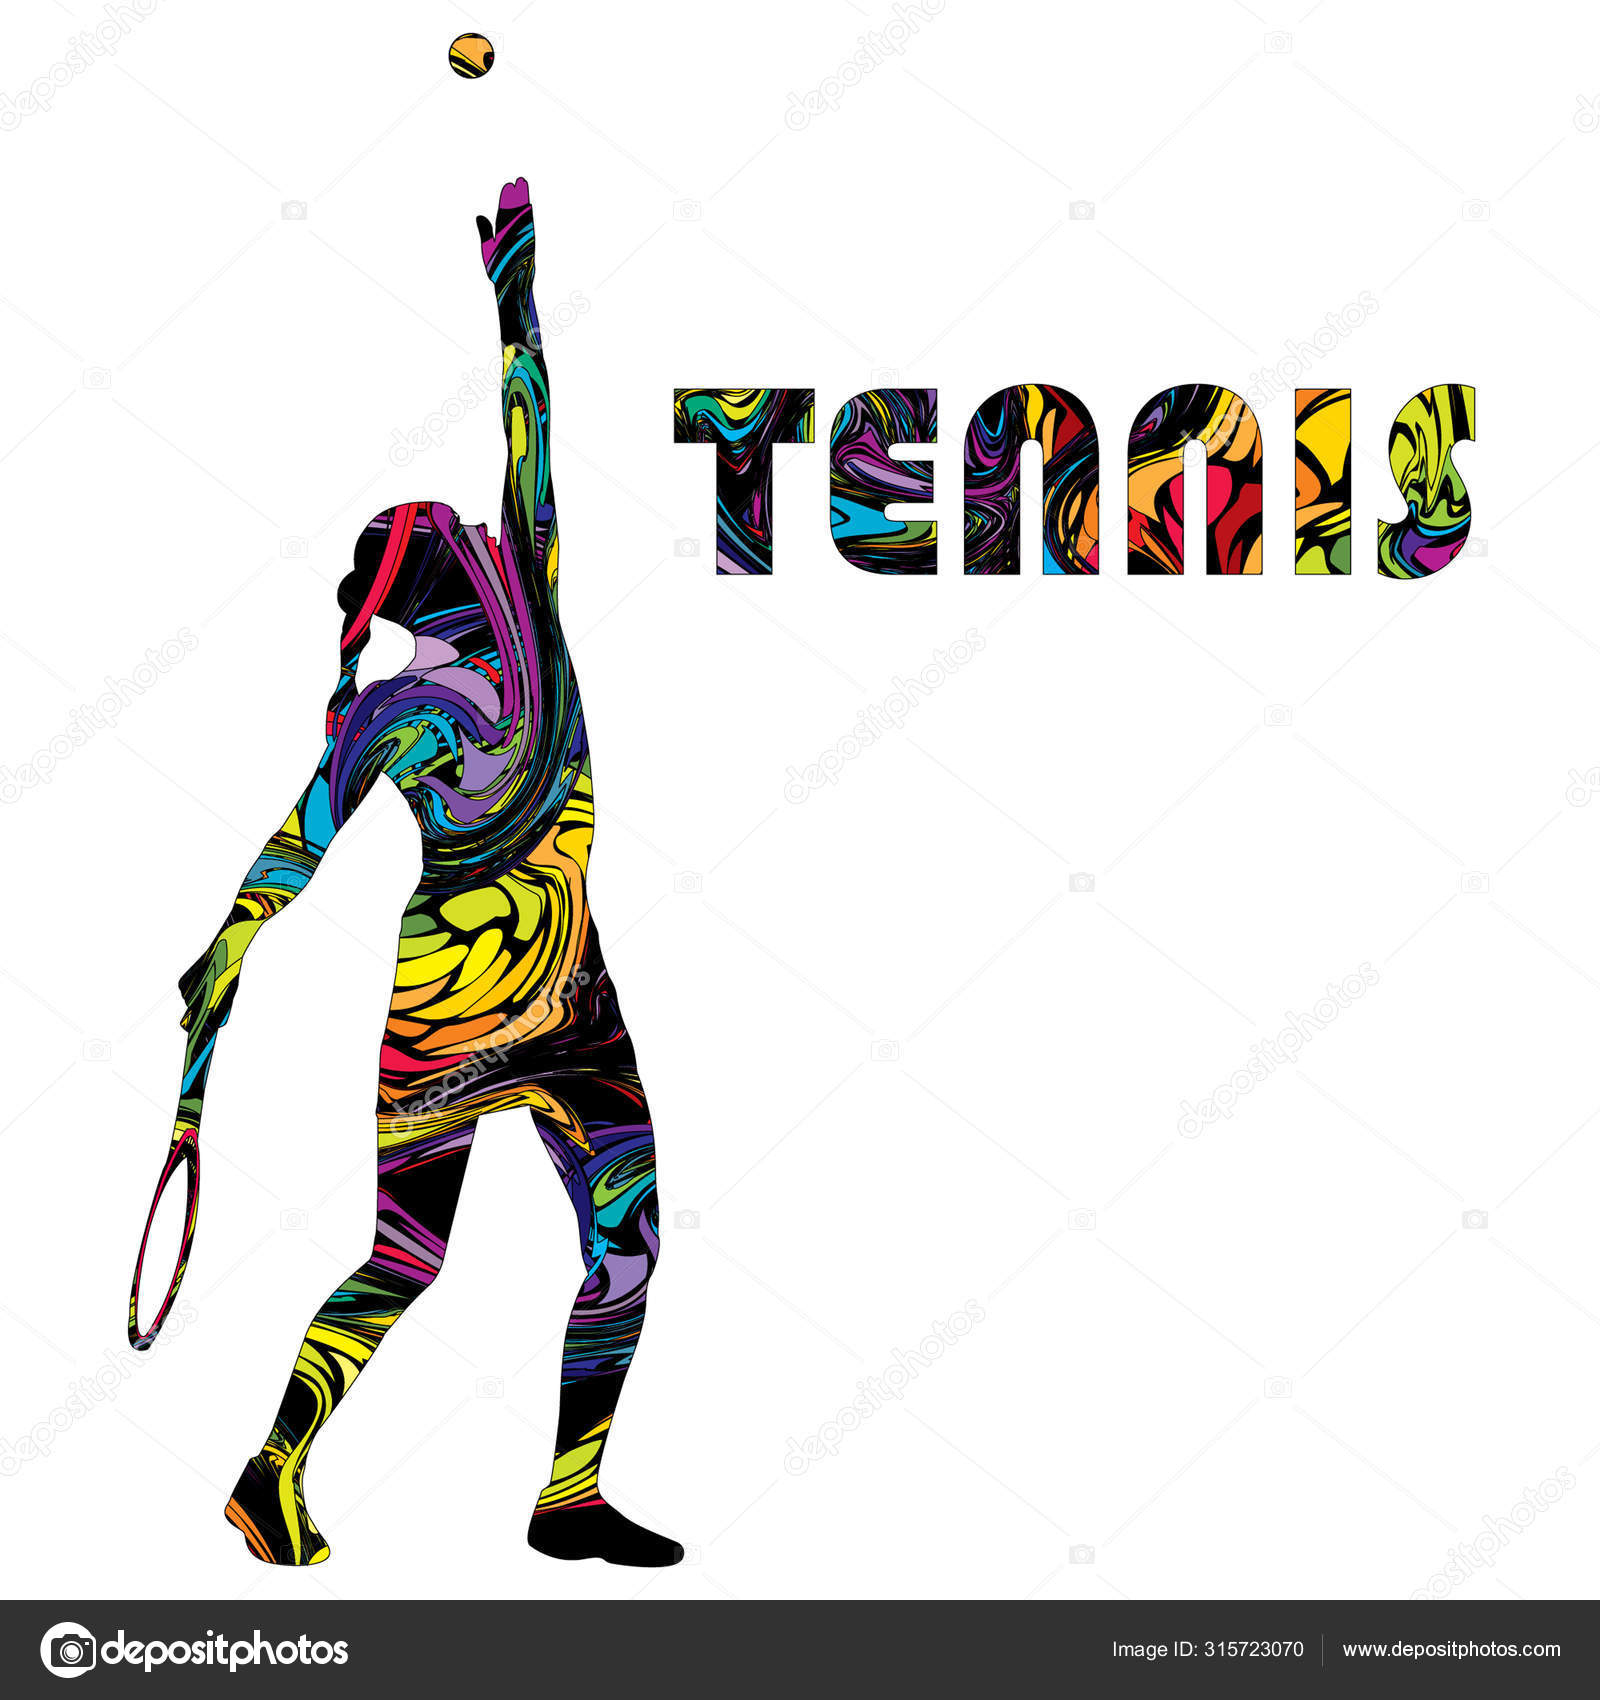 Tennis Banner With Colorful Silhouette Of A Woman Tennis Player Stock Vector C Hibrida13 315723070